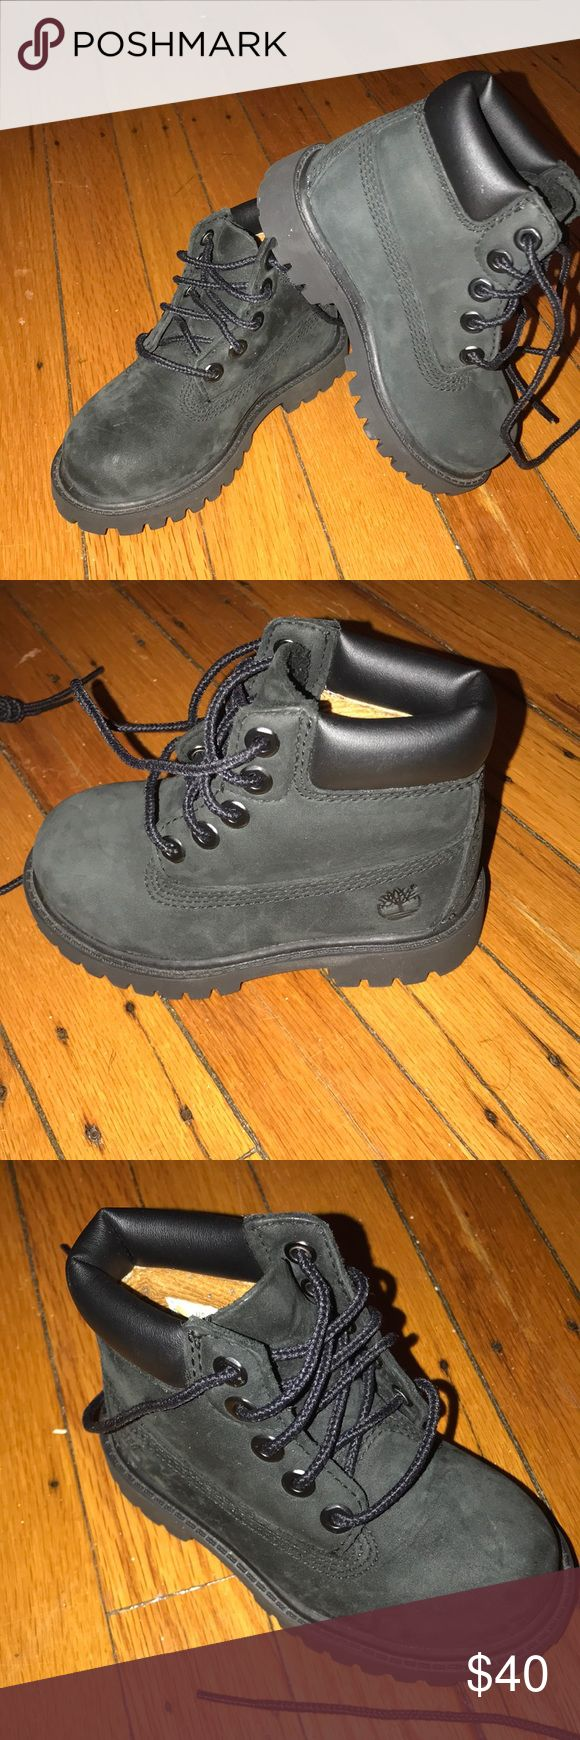 Kid Timberlands Boots Size 6c. Only wore a couple times. Great condition! Timberland Shoes Boots